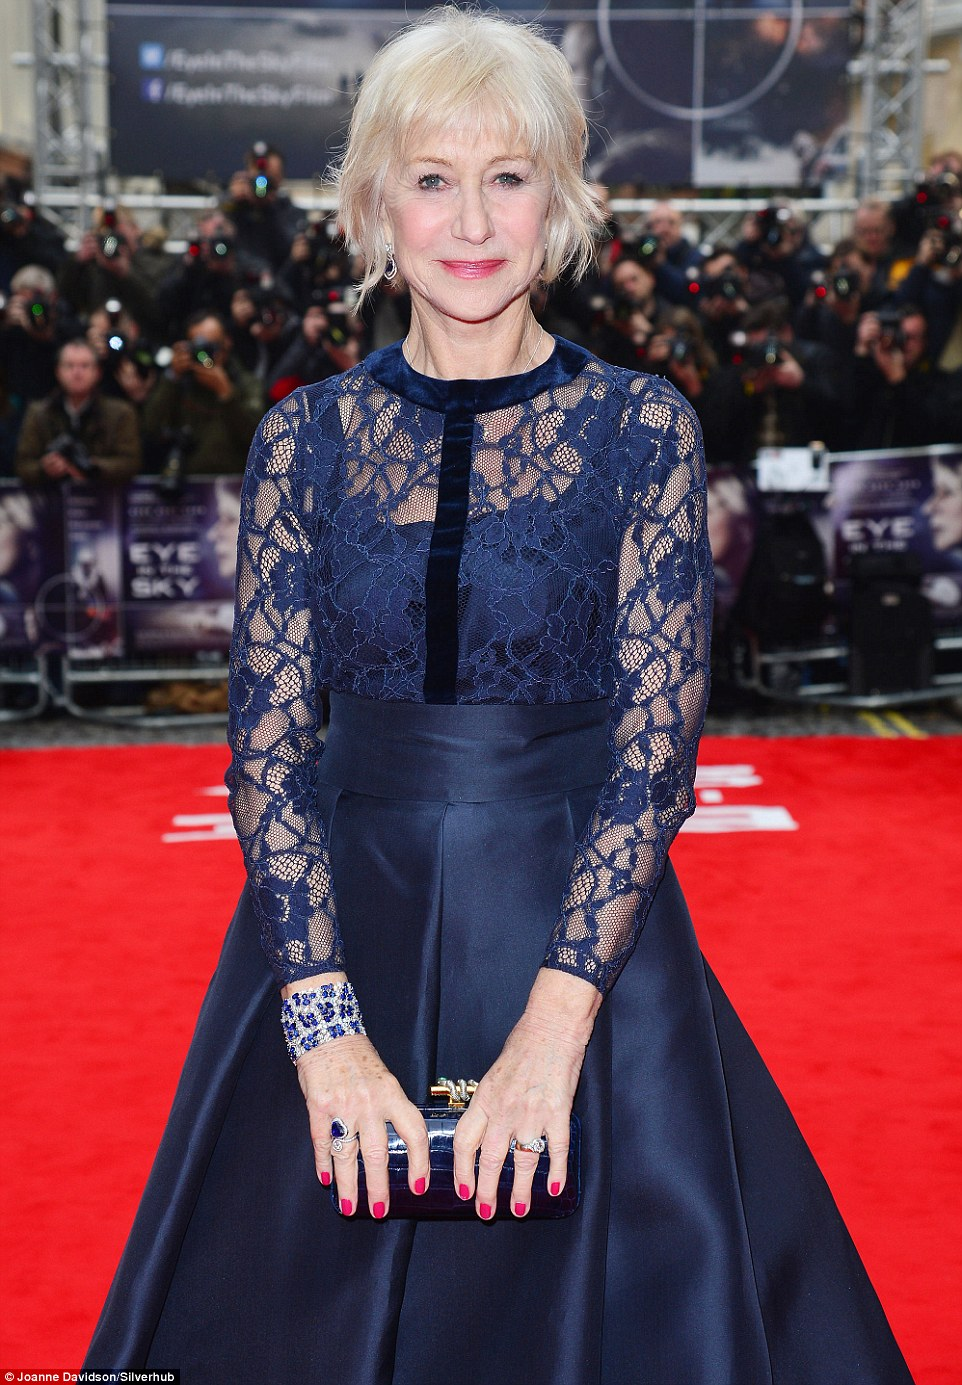 Arriving in style! Hitting the red carpet at the Curzon cinema in Mayfair flanked by a pair of soldiers, Dame Helen Mirren cut a striking figure in a lace dress as she arrived to promote her late co-star and friend Alan Rickman's last feature film, Eye In The Sky, in London